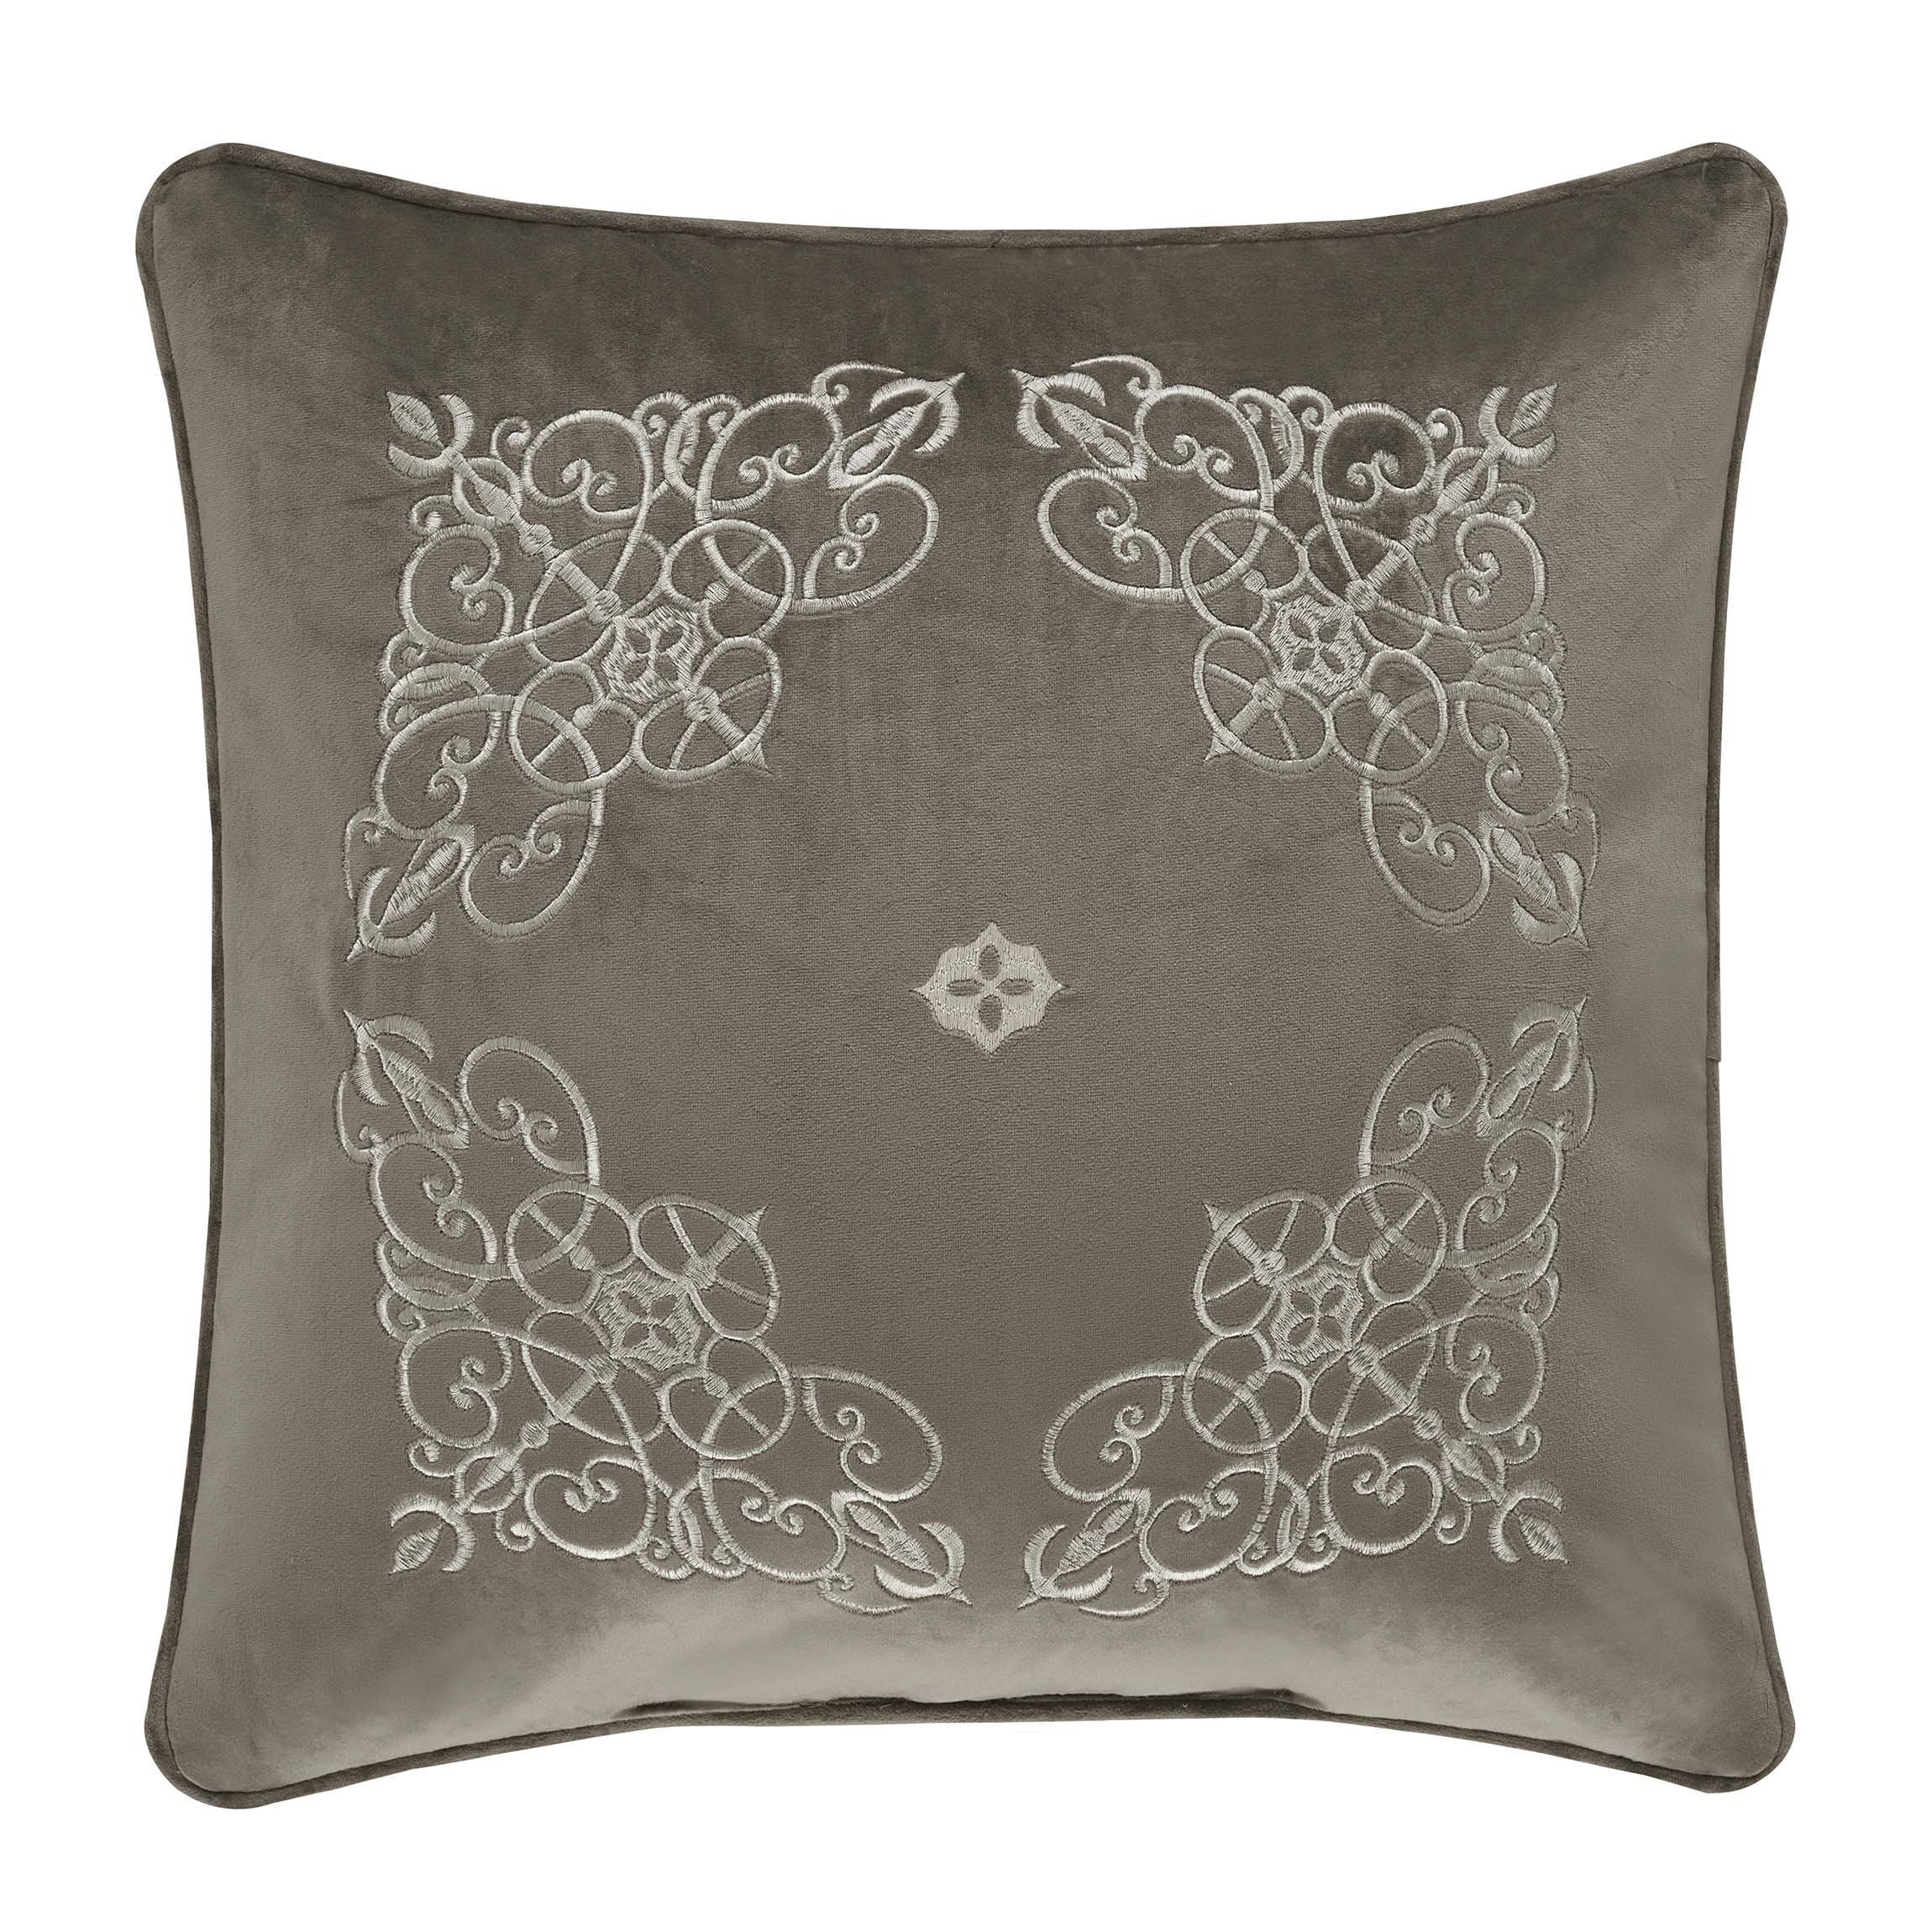 "Crestview Silver Throw Pillow 18""W x 18""L"" [Luxury comforter Sets] [by Latest Bedding]"